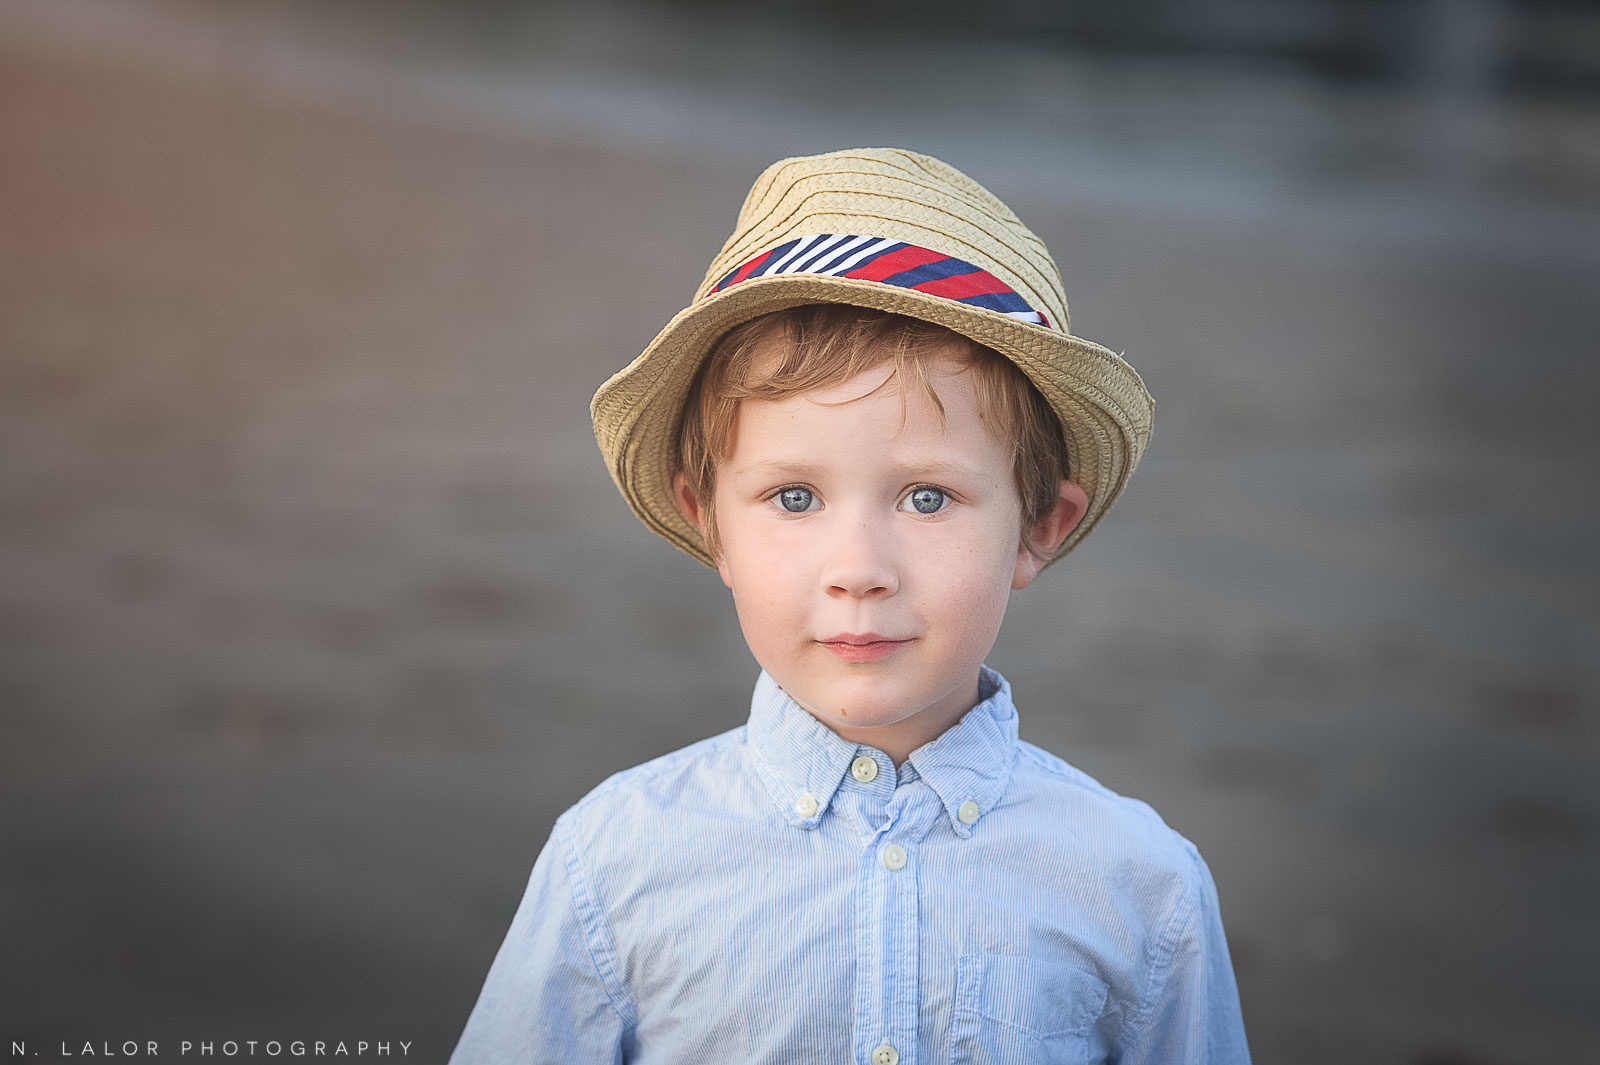 nlalor-photography-063014-styled-boy-beach-session-stamford-ct-10.jpg